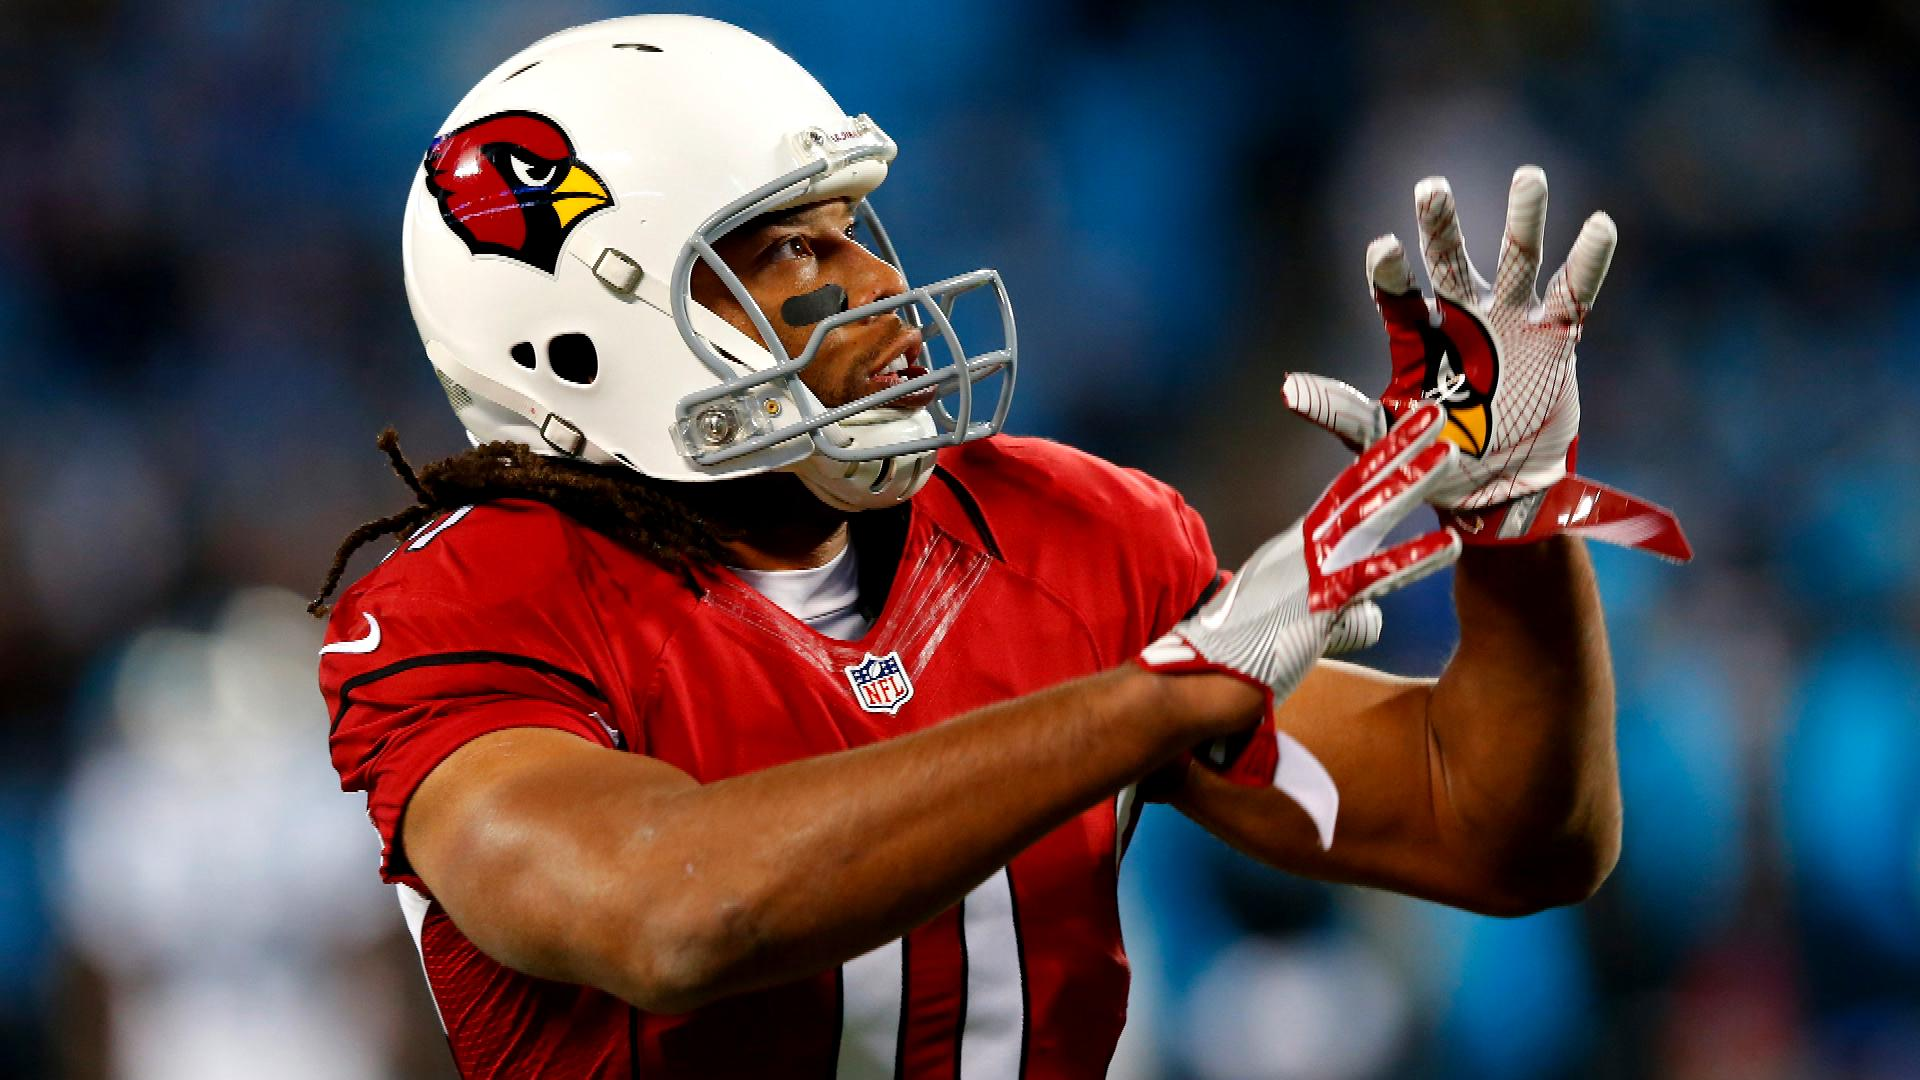 Will Arizona Cardinals New Offense Keep Larry Fitzgerald From Images, Photos, Reviews